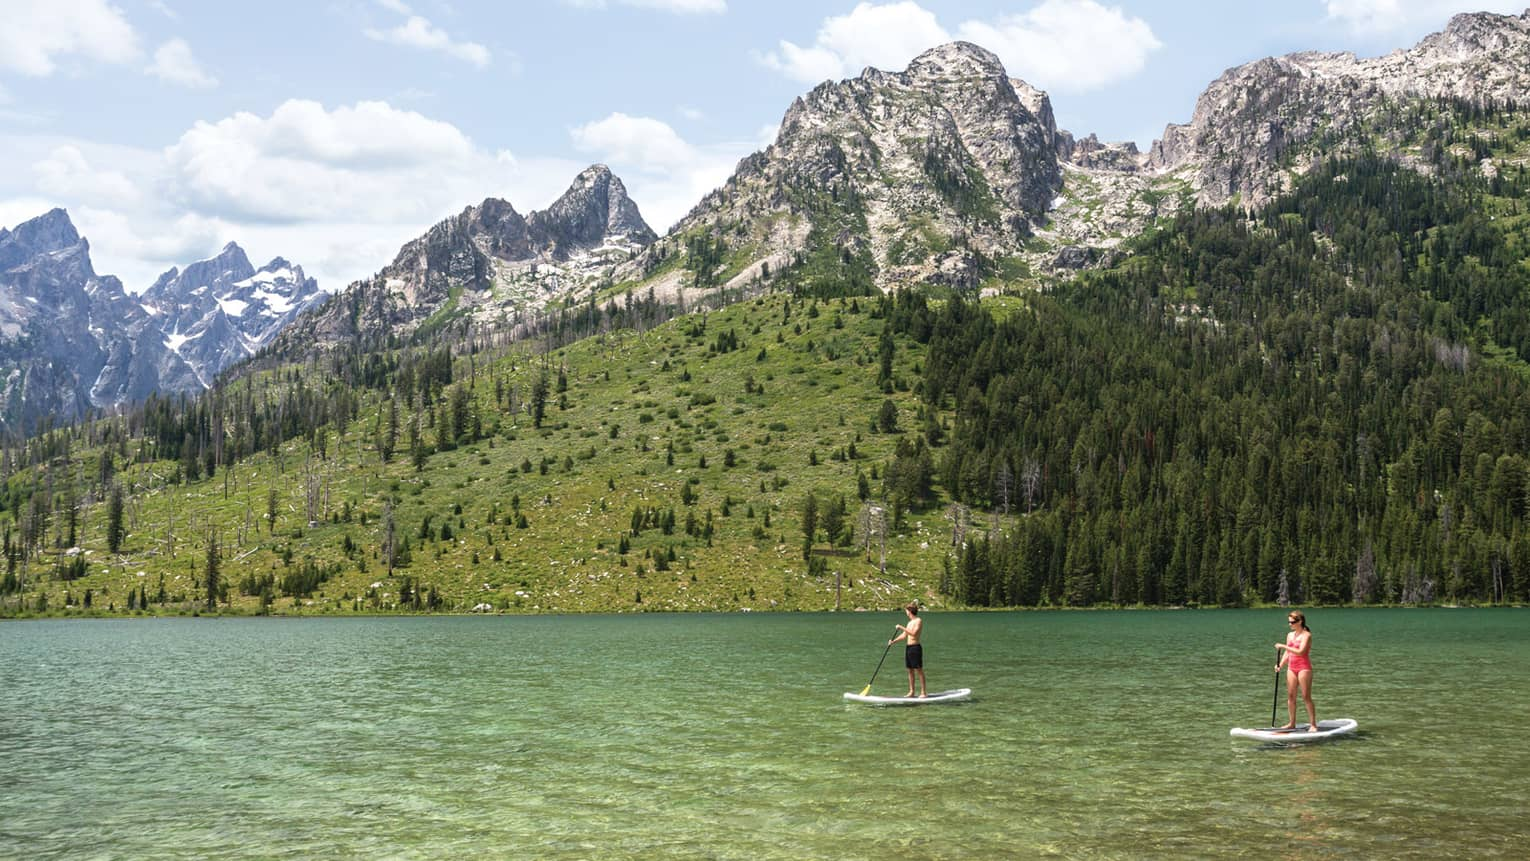 Two people on stand-up paddleboards on lake under mountain hills, trees, snowy peaks